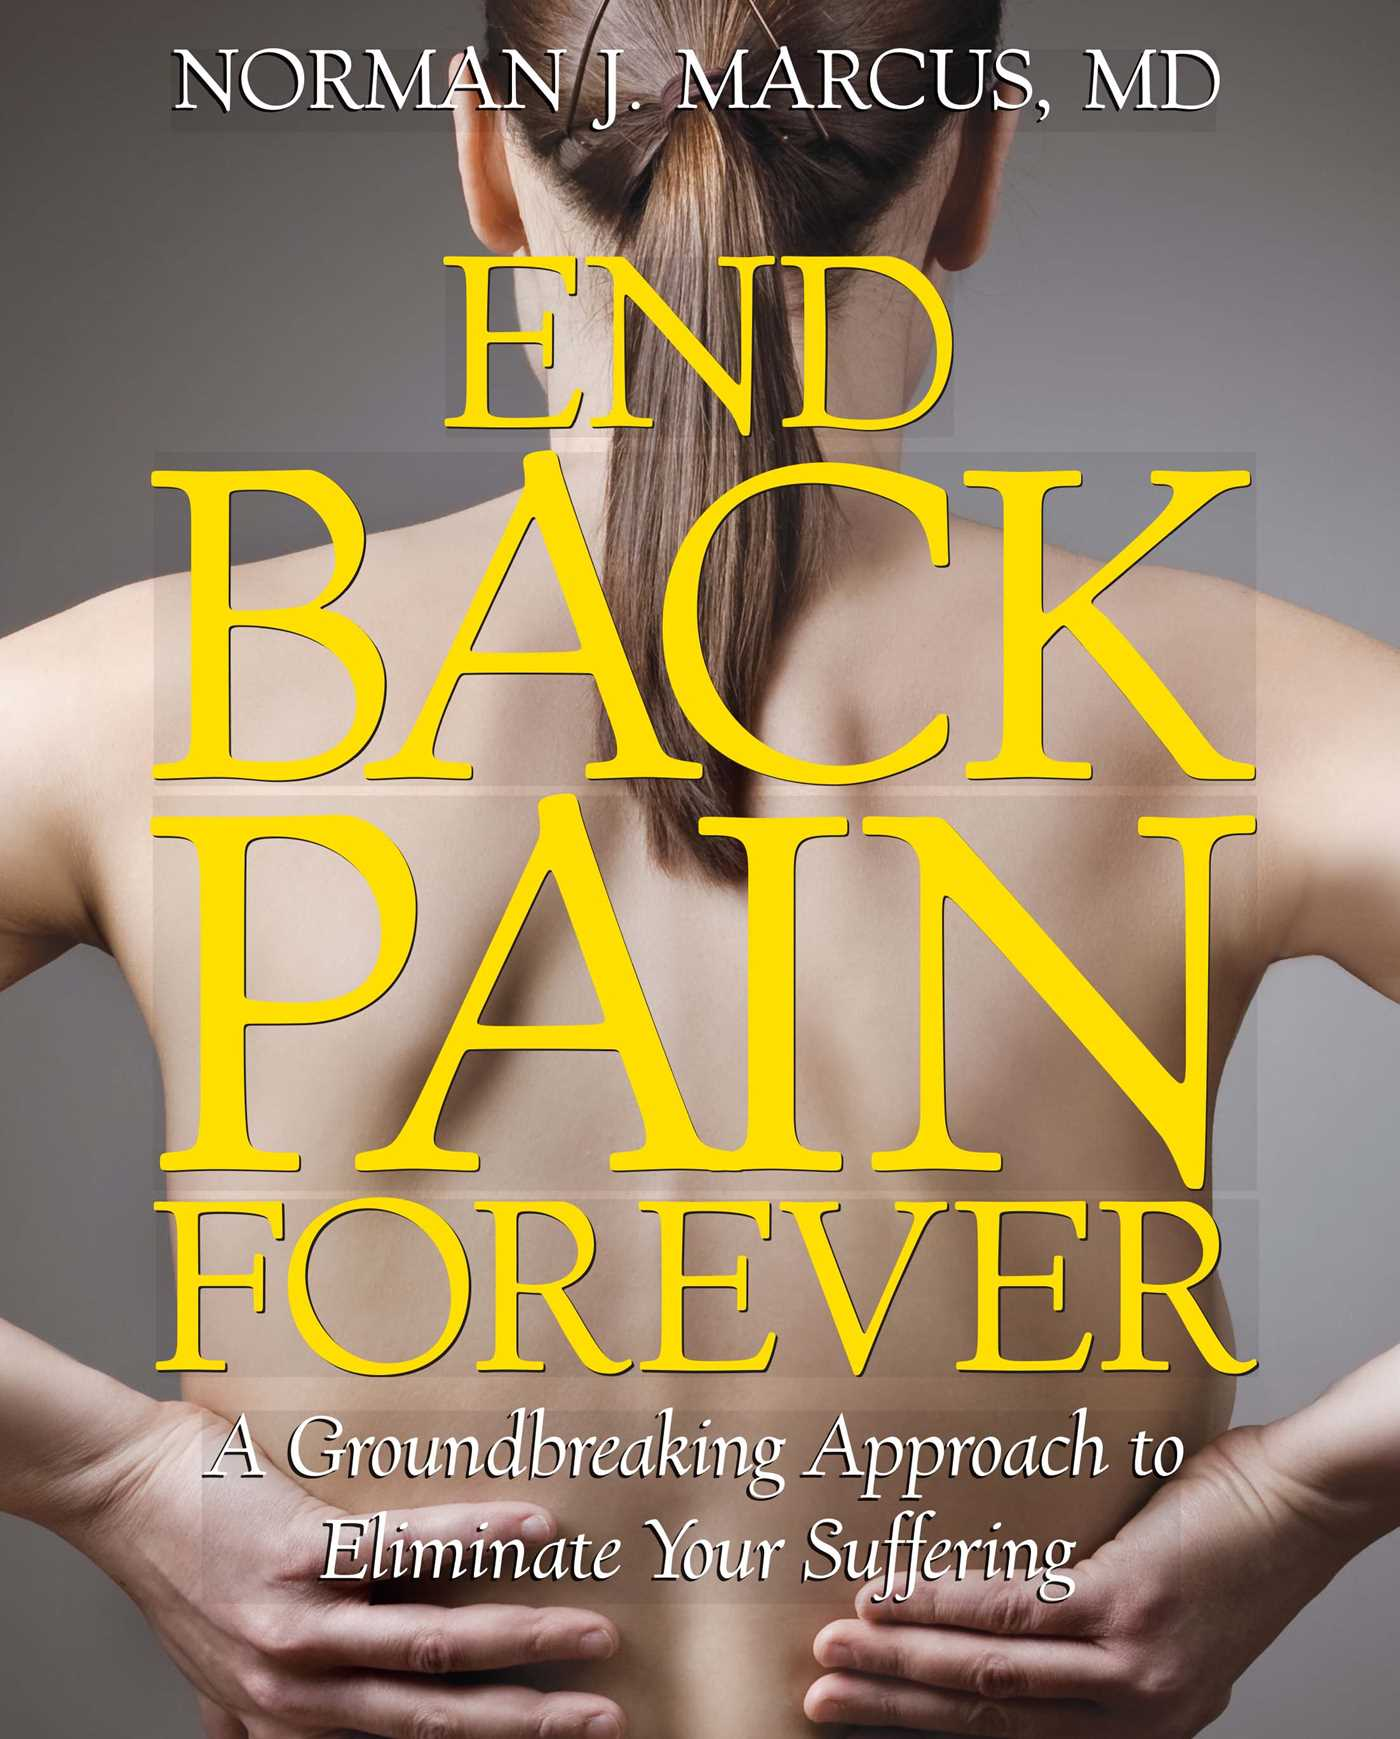 End-back-pain-forever-9781439167441_hr